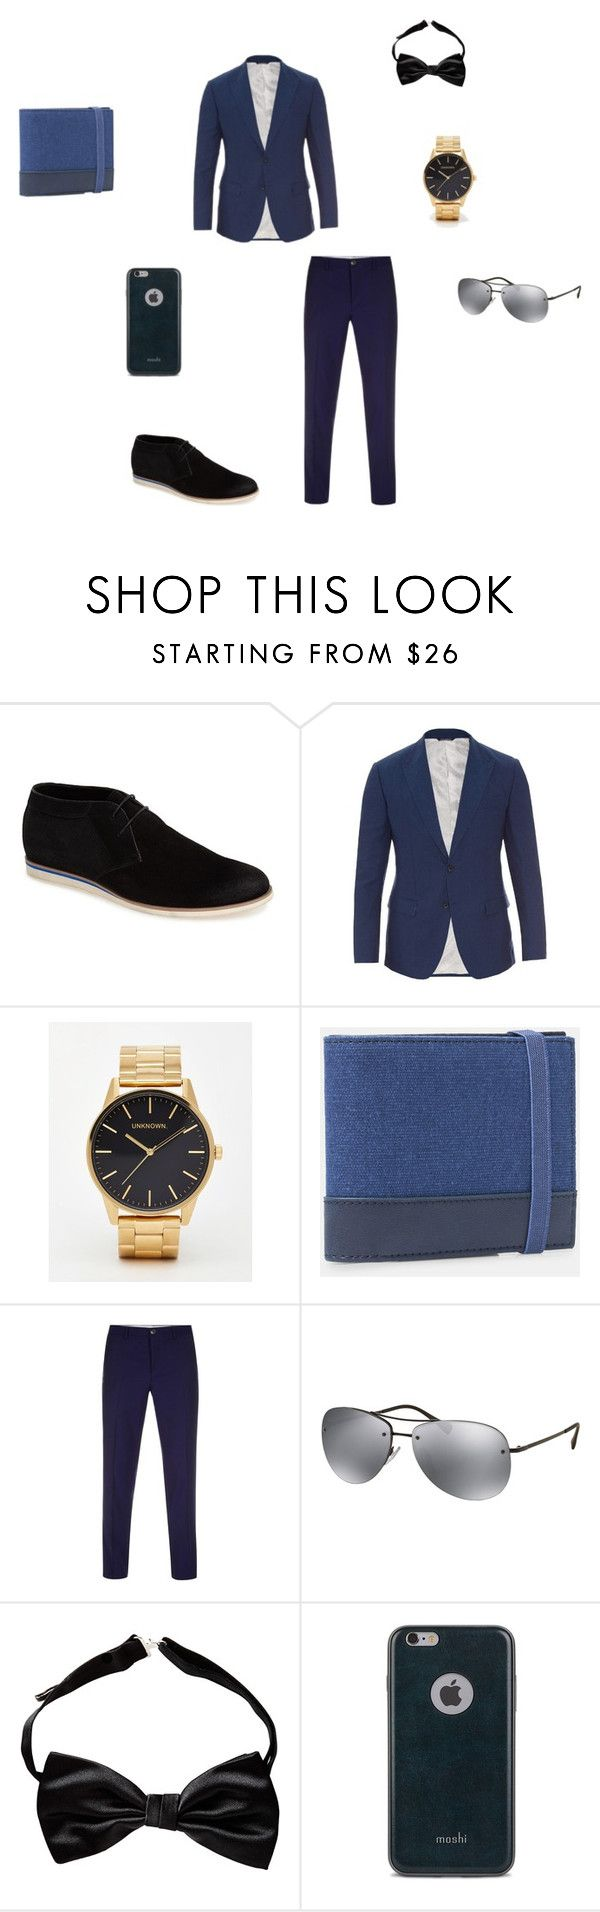 """Birou"" by neculaescu-alexia on Polyvore featuring Joe's, Dolce&Gabbana, MANGO MAN, Paul Smith, Prada, Moshi, mens, men, men's wear and mens wear"